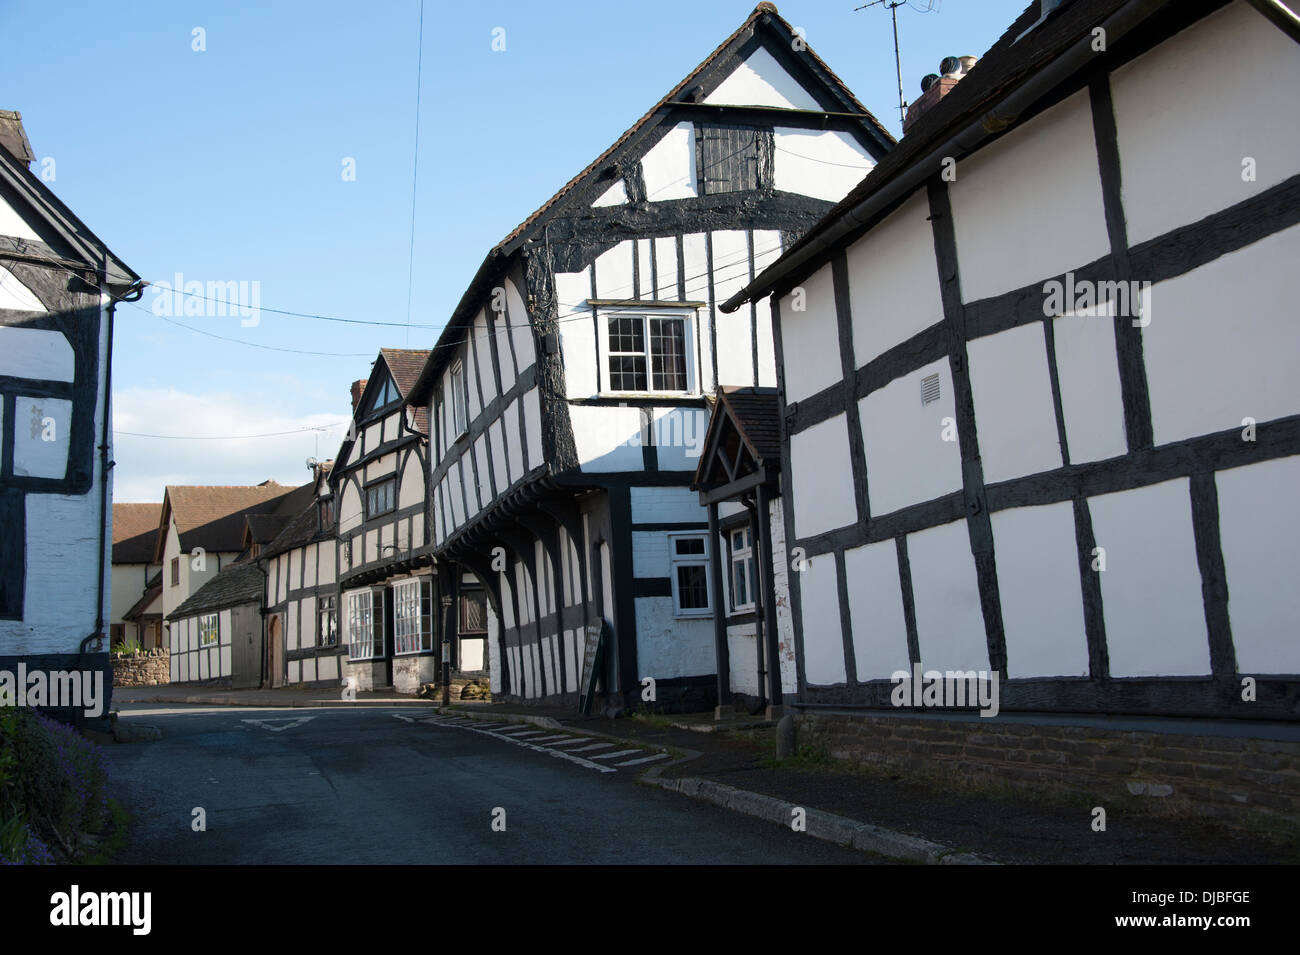 Whattle and Daub Construction Houses Weobley Herefordshire UK - Stock Image